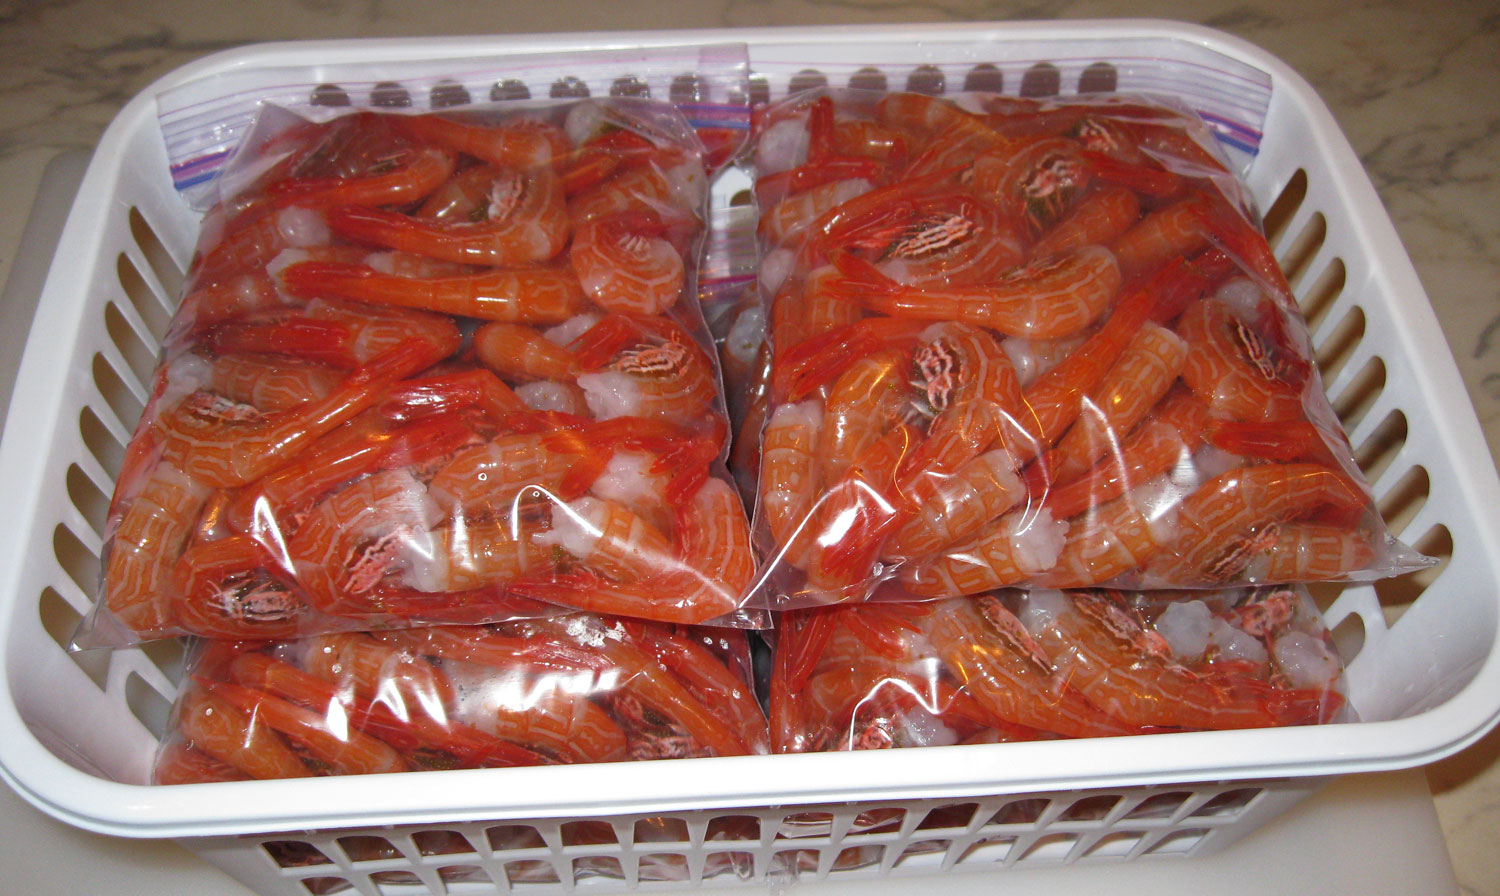 Bags of sidestripe shrimp tails ready to go into the freezer.